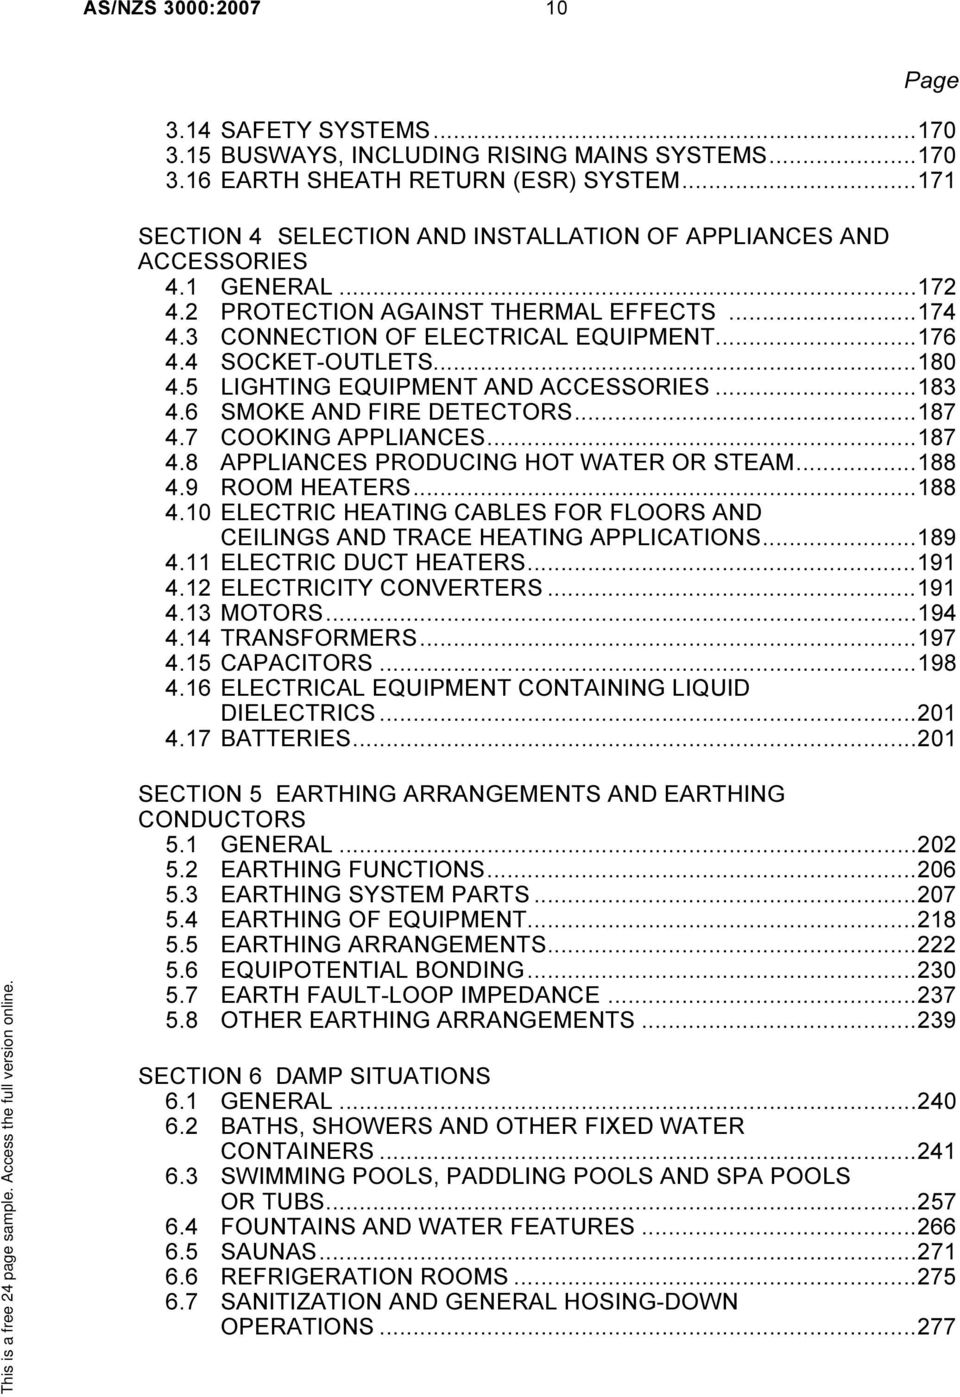 Asnzs 30002007 wiring rules pdf 180 45 lighting equipment and accessories183 46 smoke and fire keyboard keysfo Images